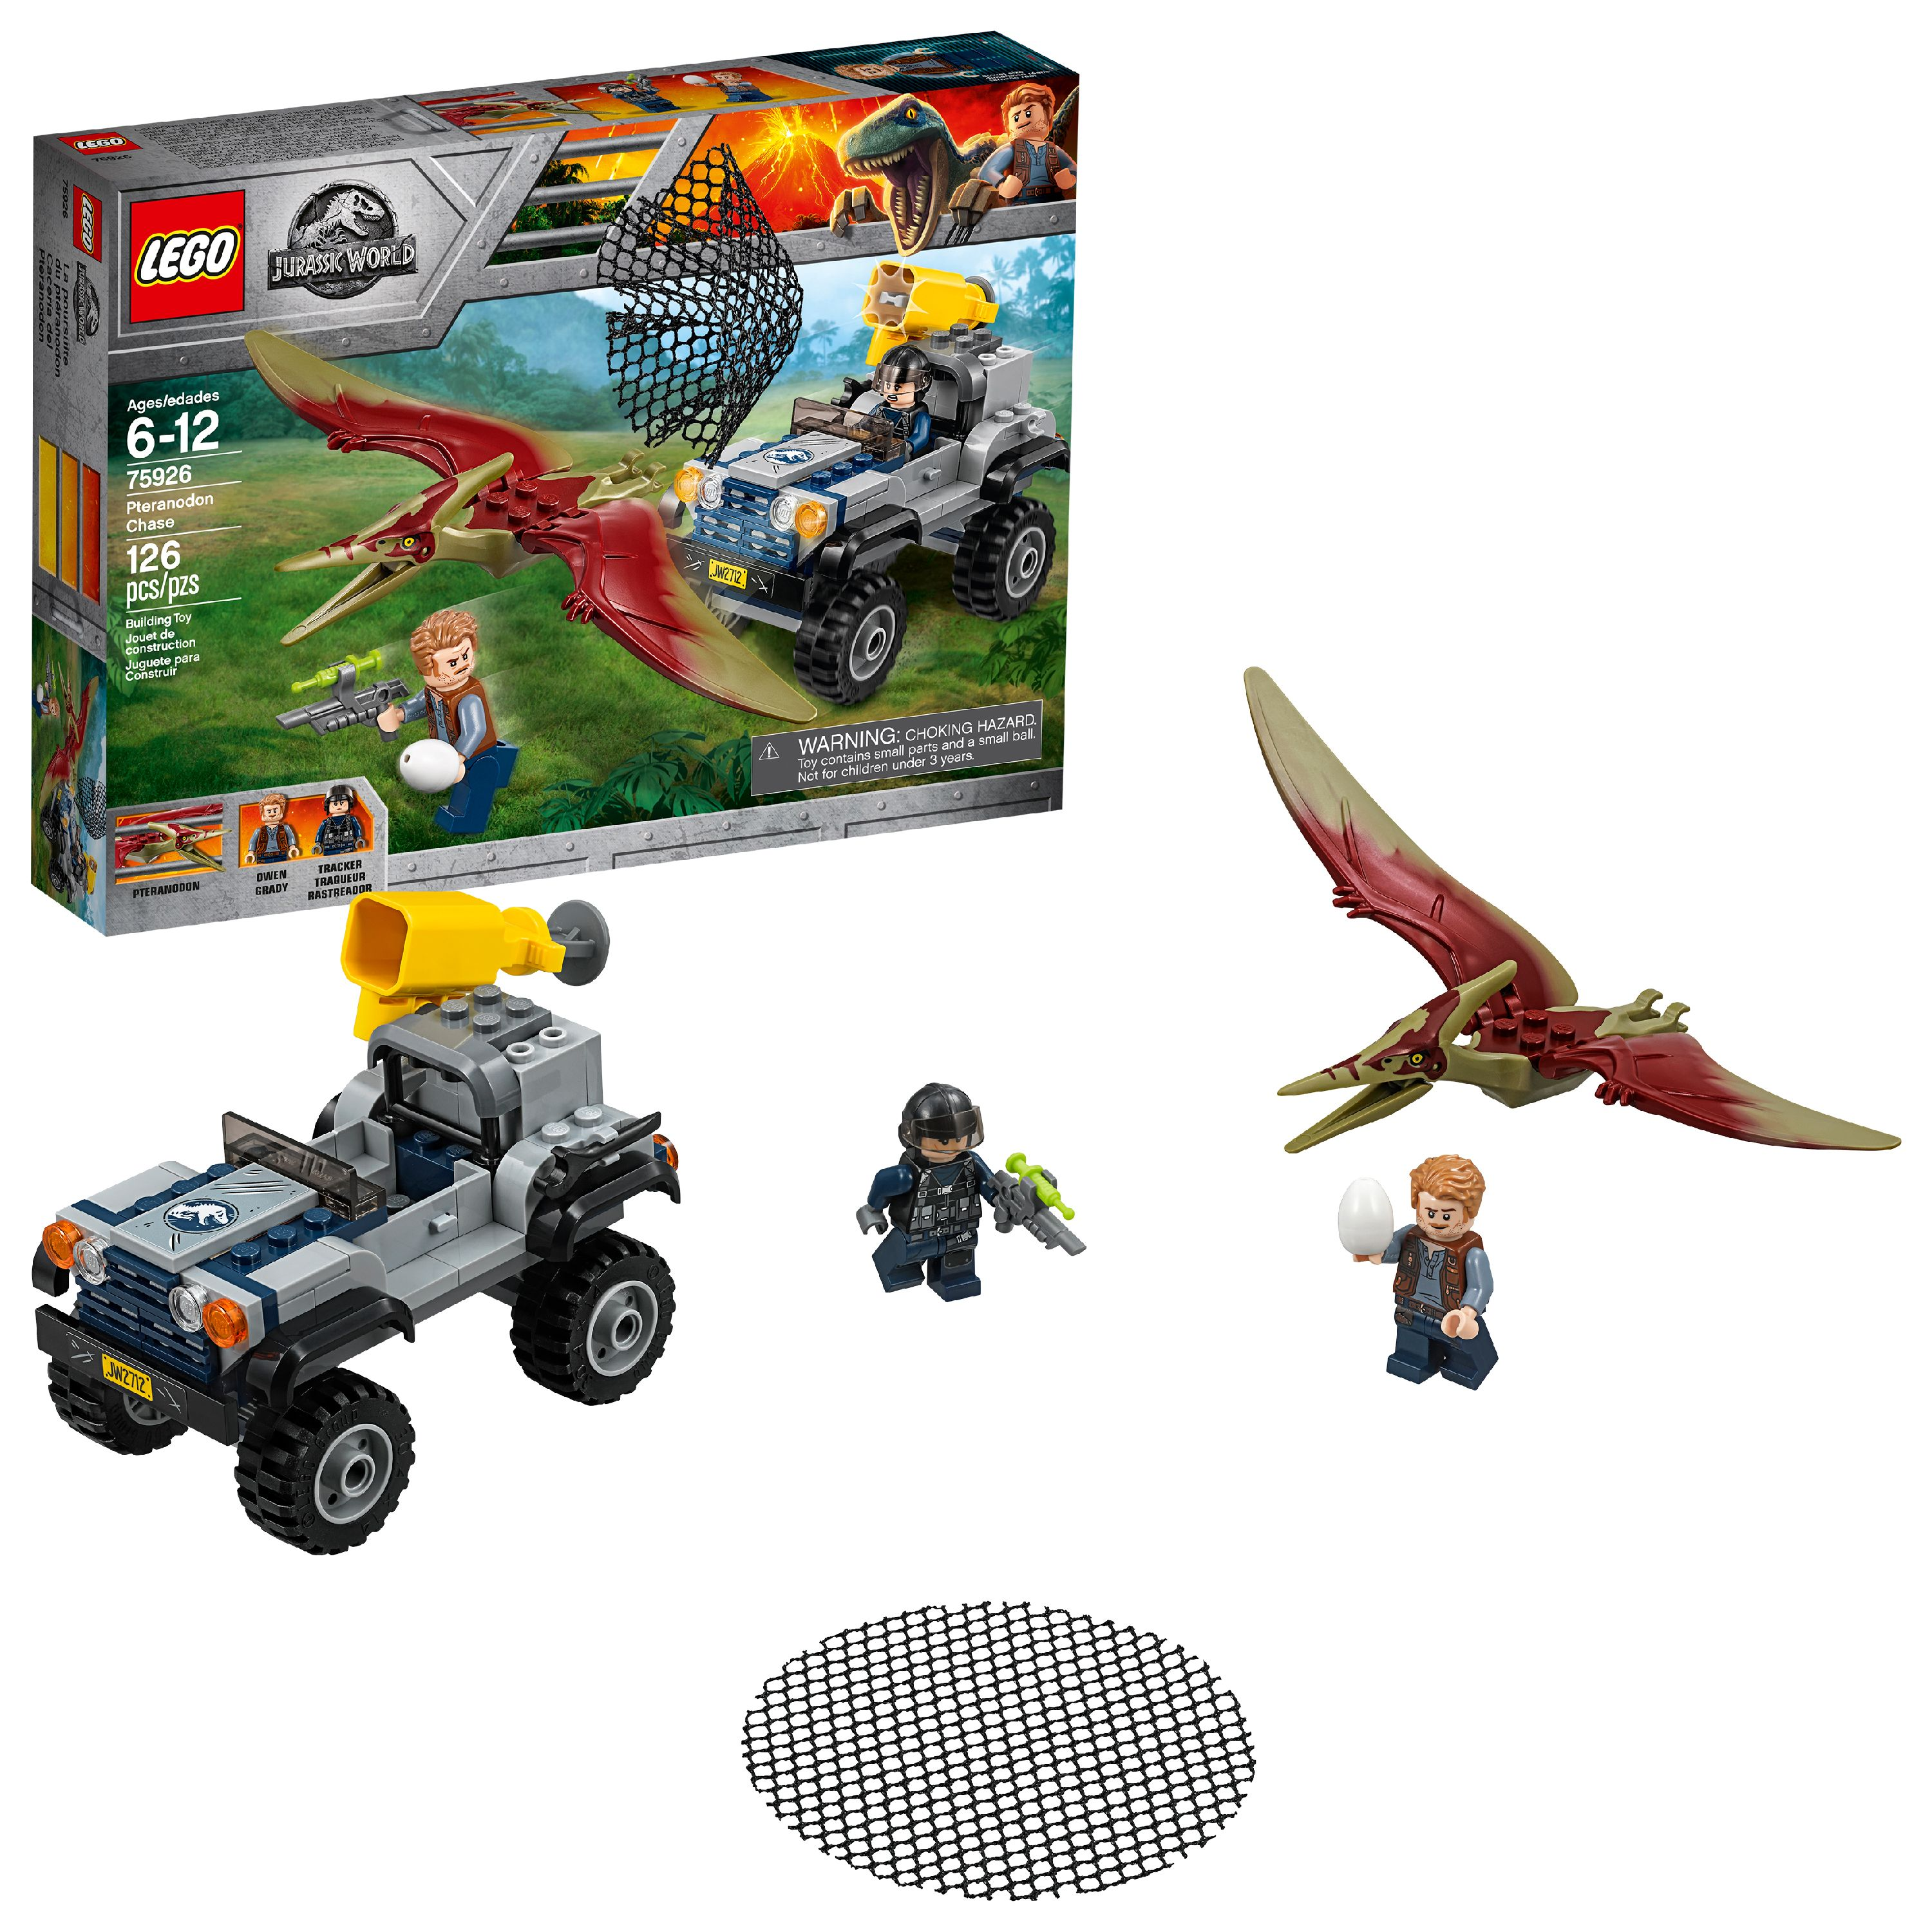 LEGO Jurassic World Pteranodon Chase 75926 (126 Pieces)